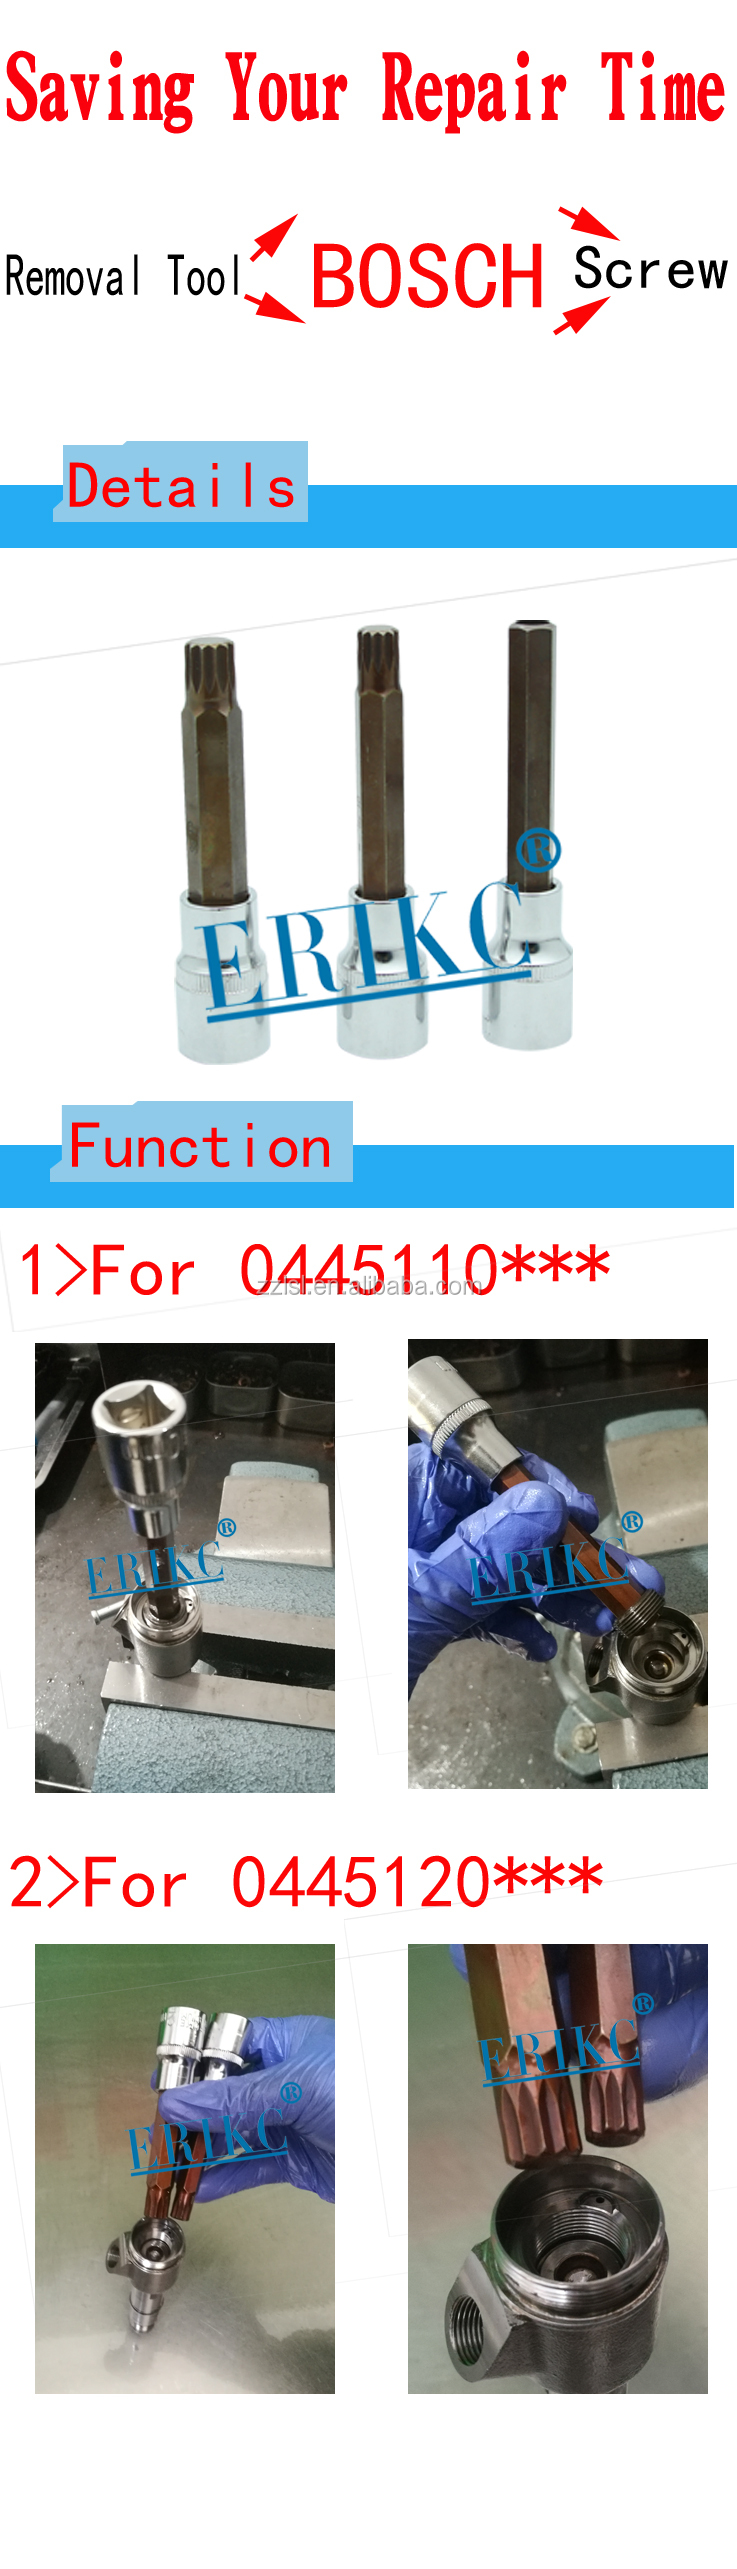 ERIKC crdi repair tools to remove valve for auto diesel part injector 110 120 series